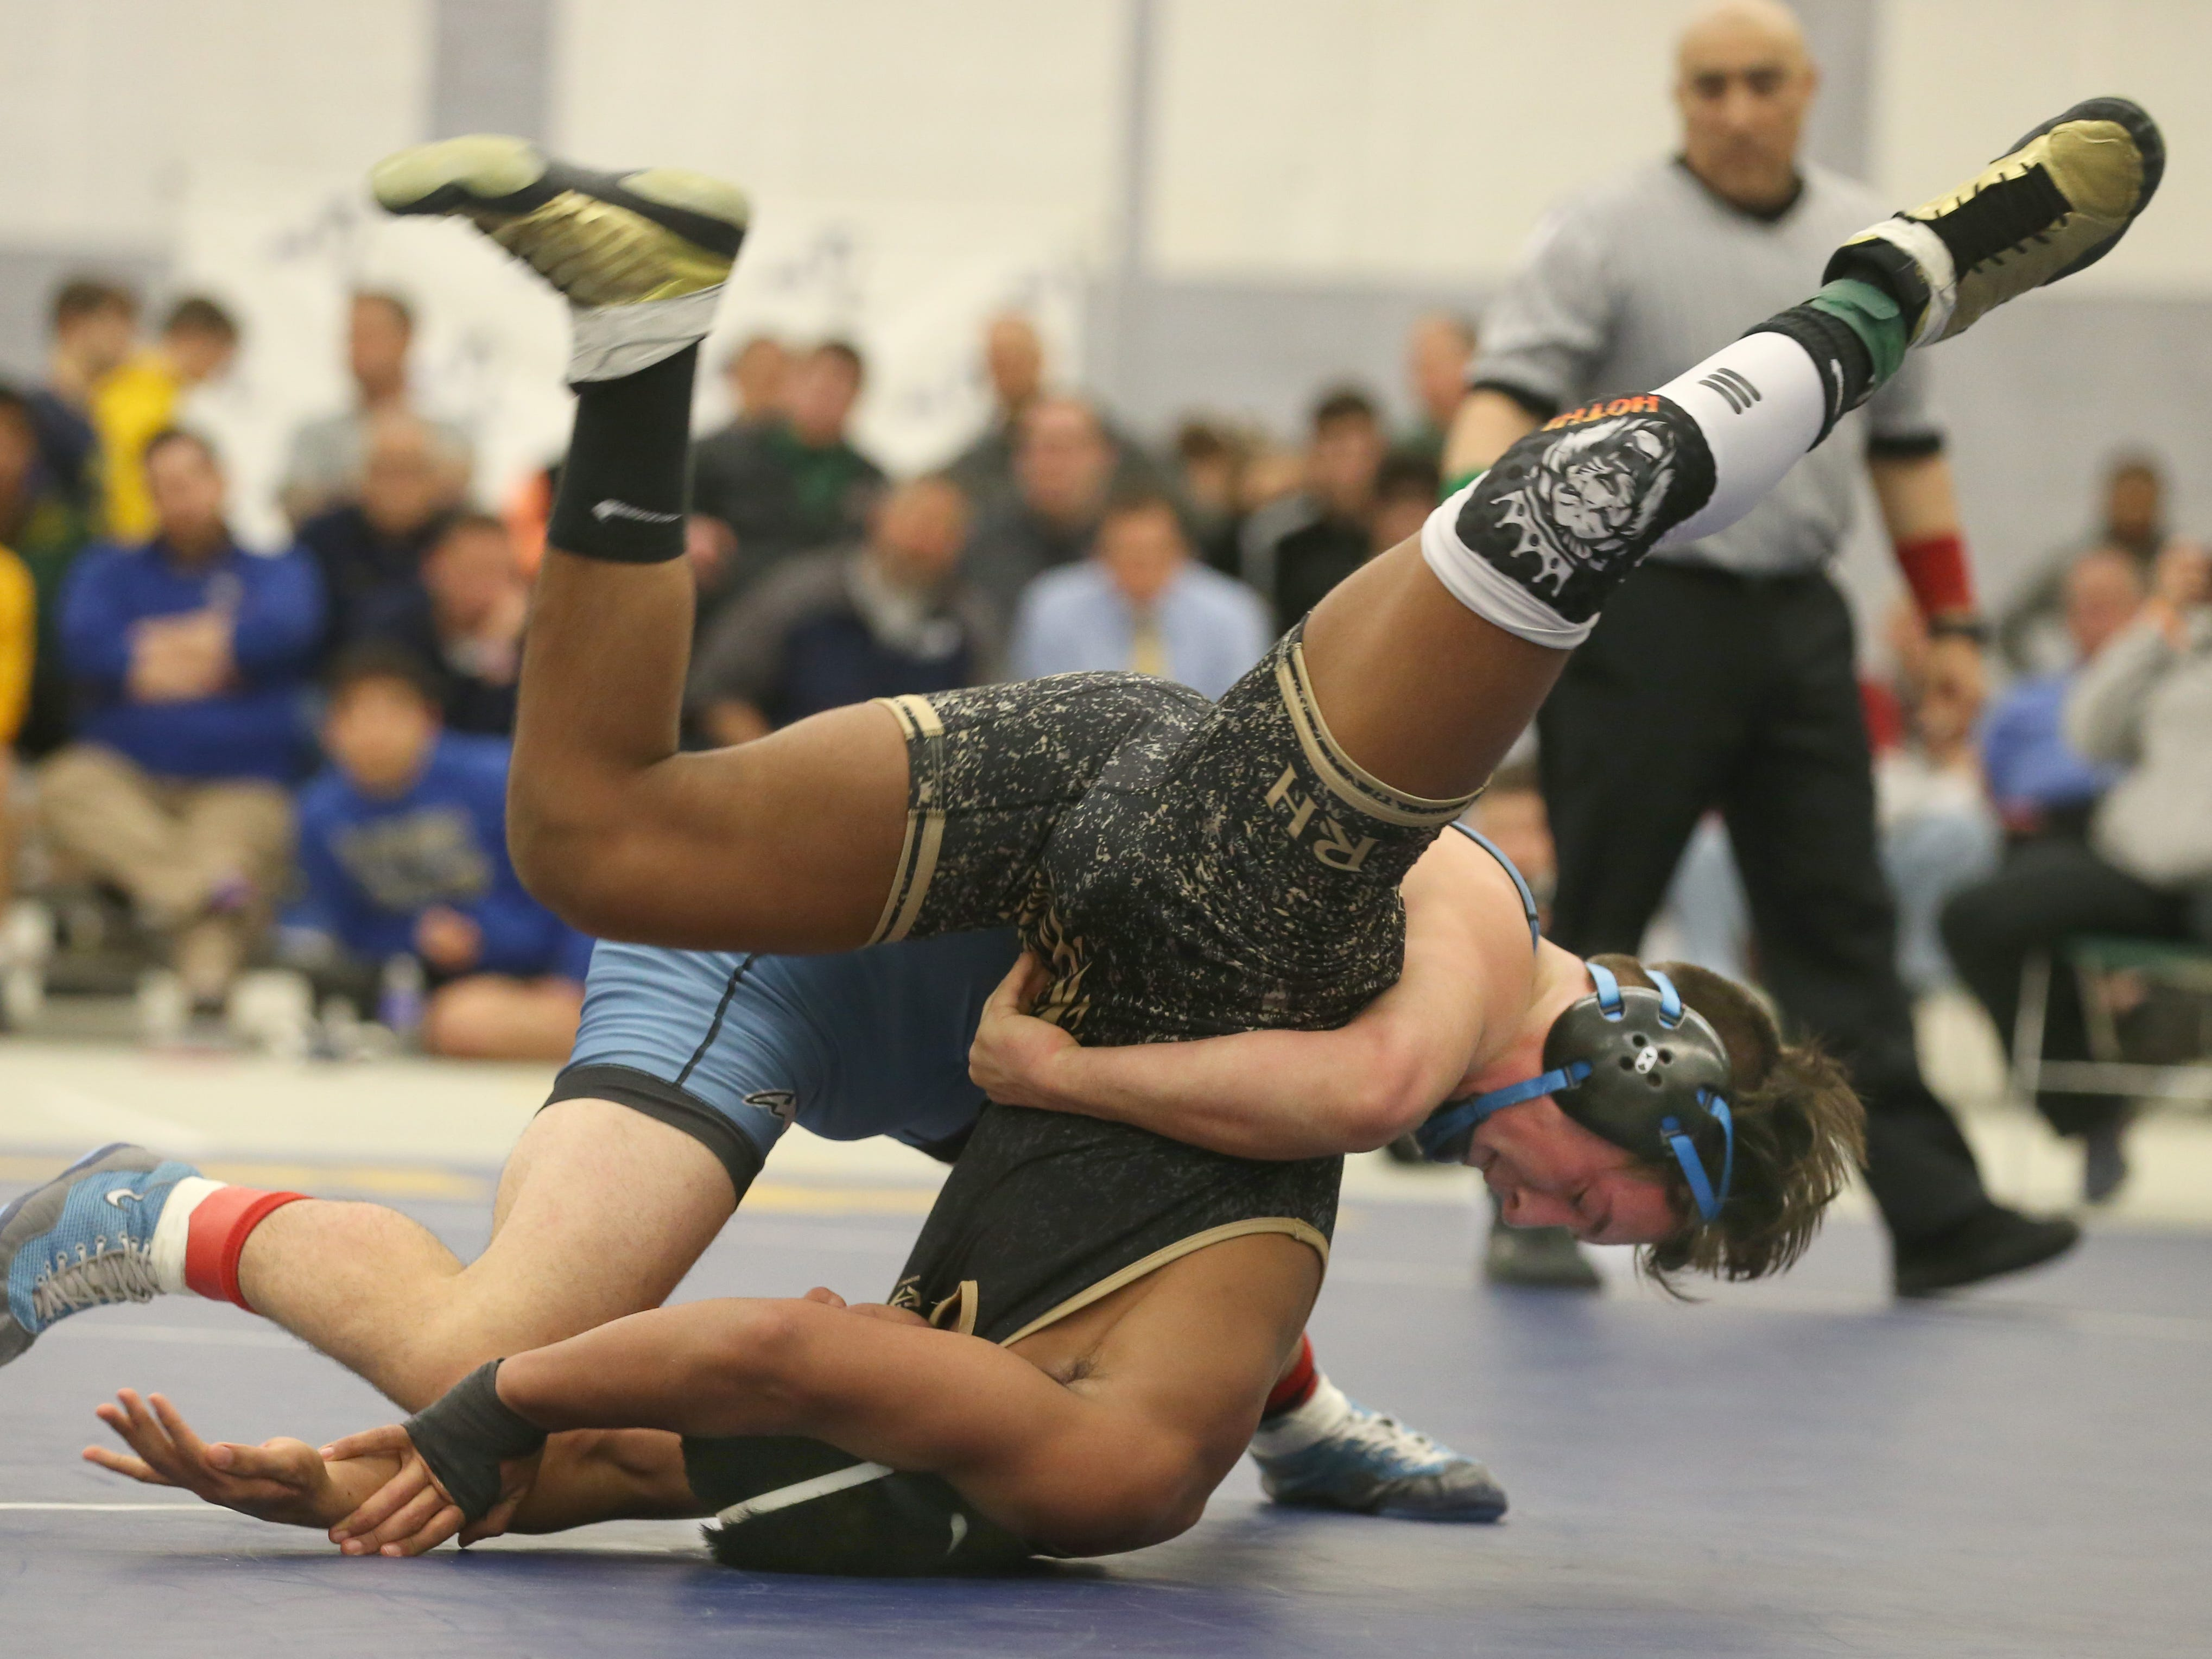 Greece's Dillon Callaghan, right top, flips Karamvir Hothi, Rush Henrietta, in their Division 1, 145 pound match at the 52nd Annual State Wrestling Qualifier at the College at Brockport Saturday, Feb. 9, 2019.